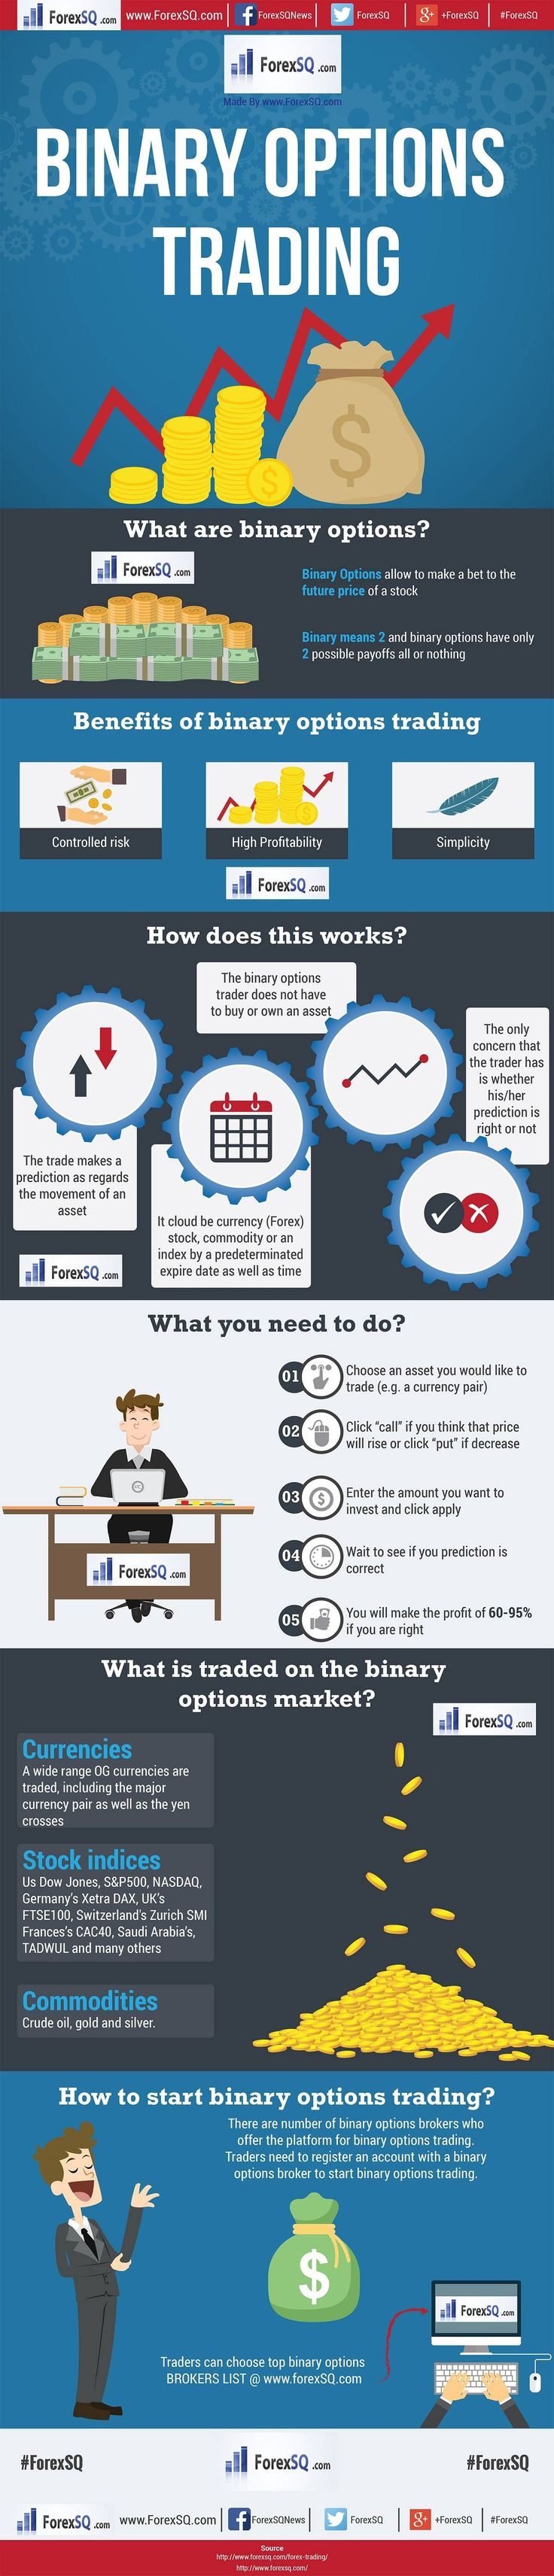 Binary Options Trading Definition For Beginners By ForexSQ #Infographic #Trading